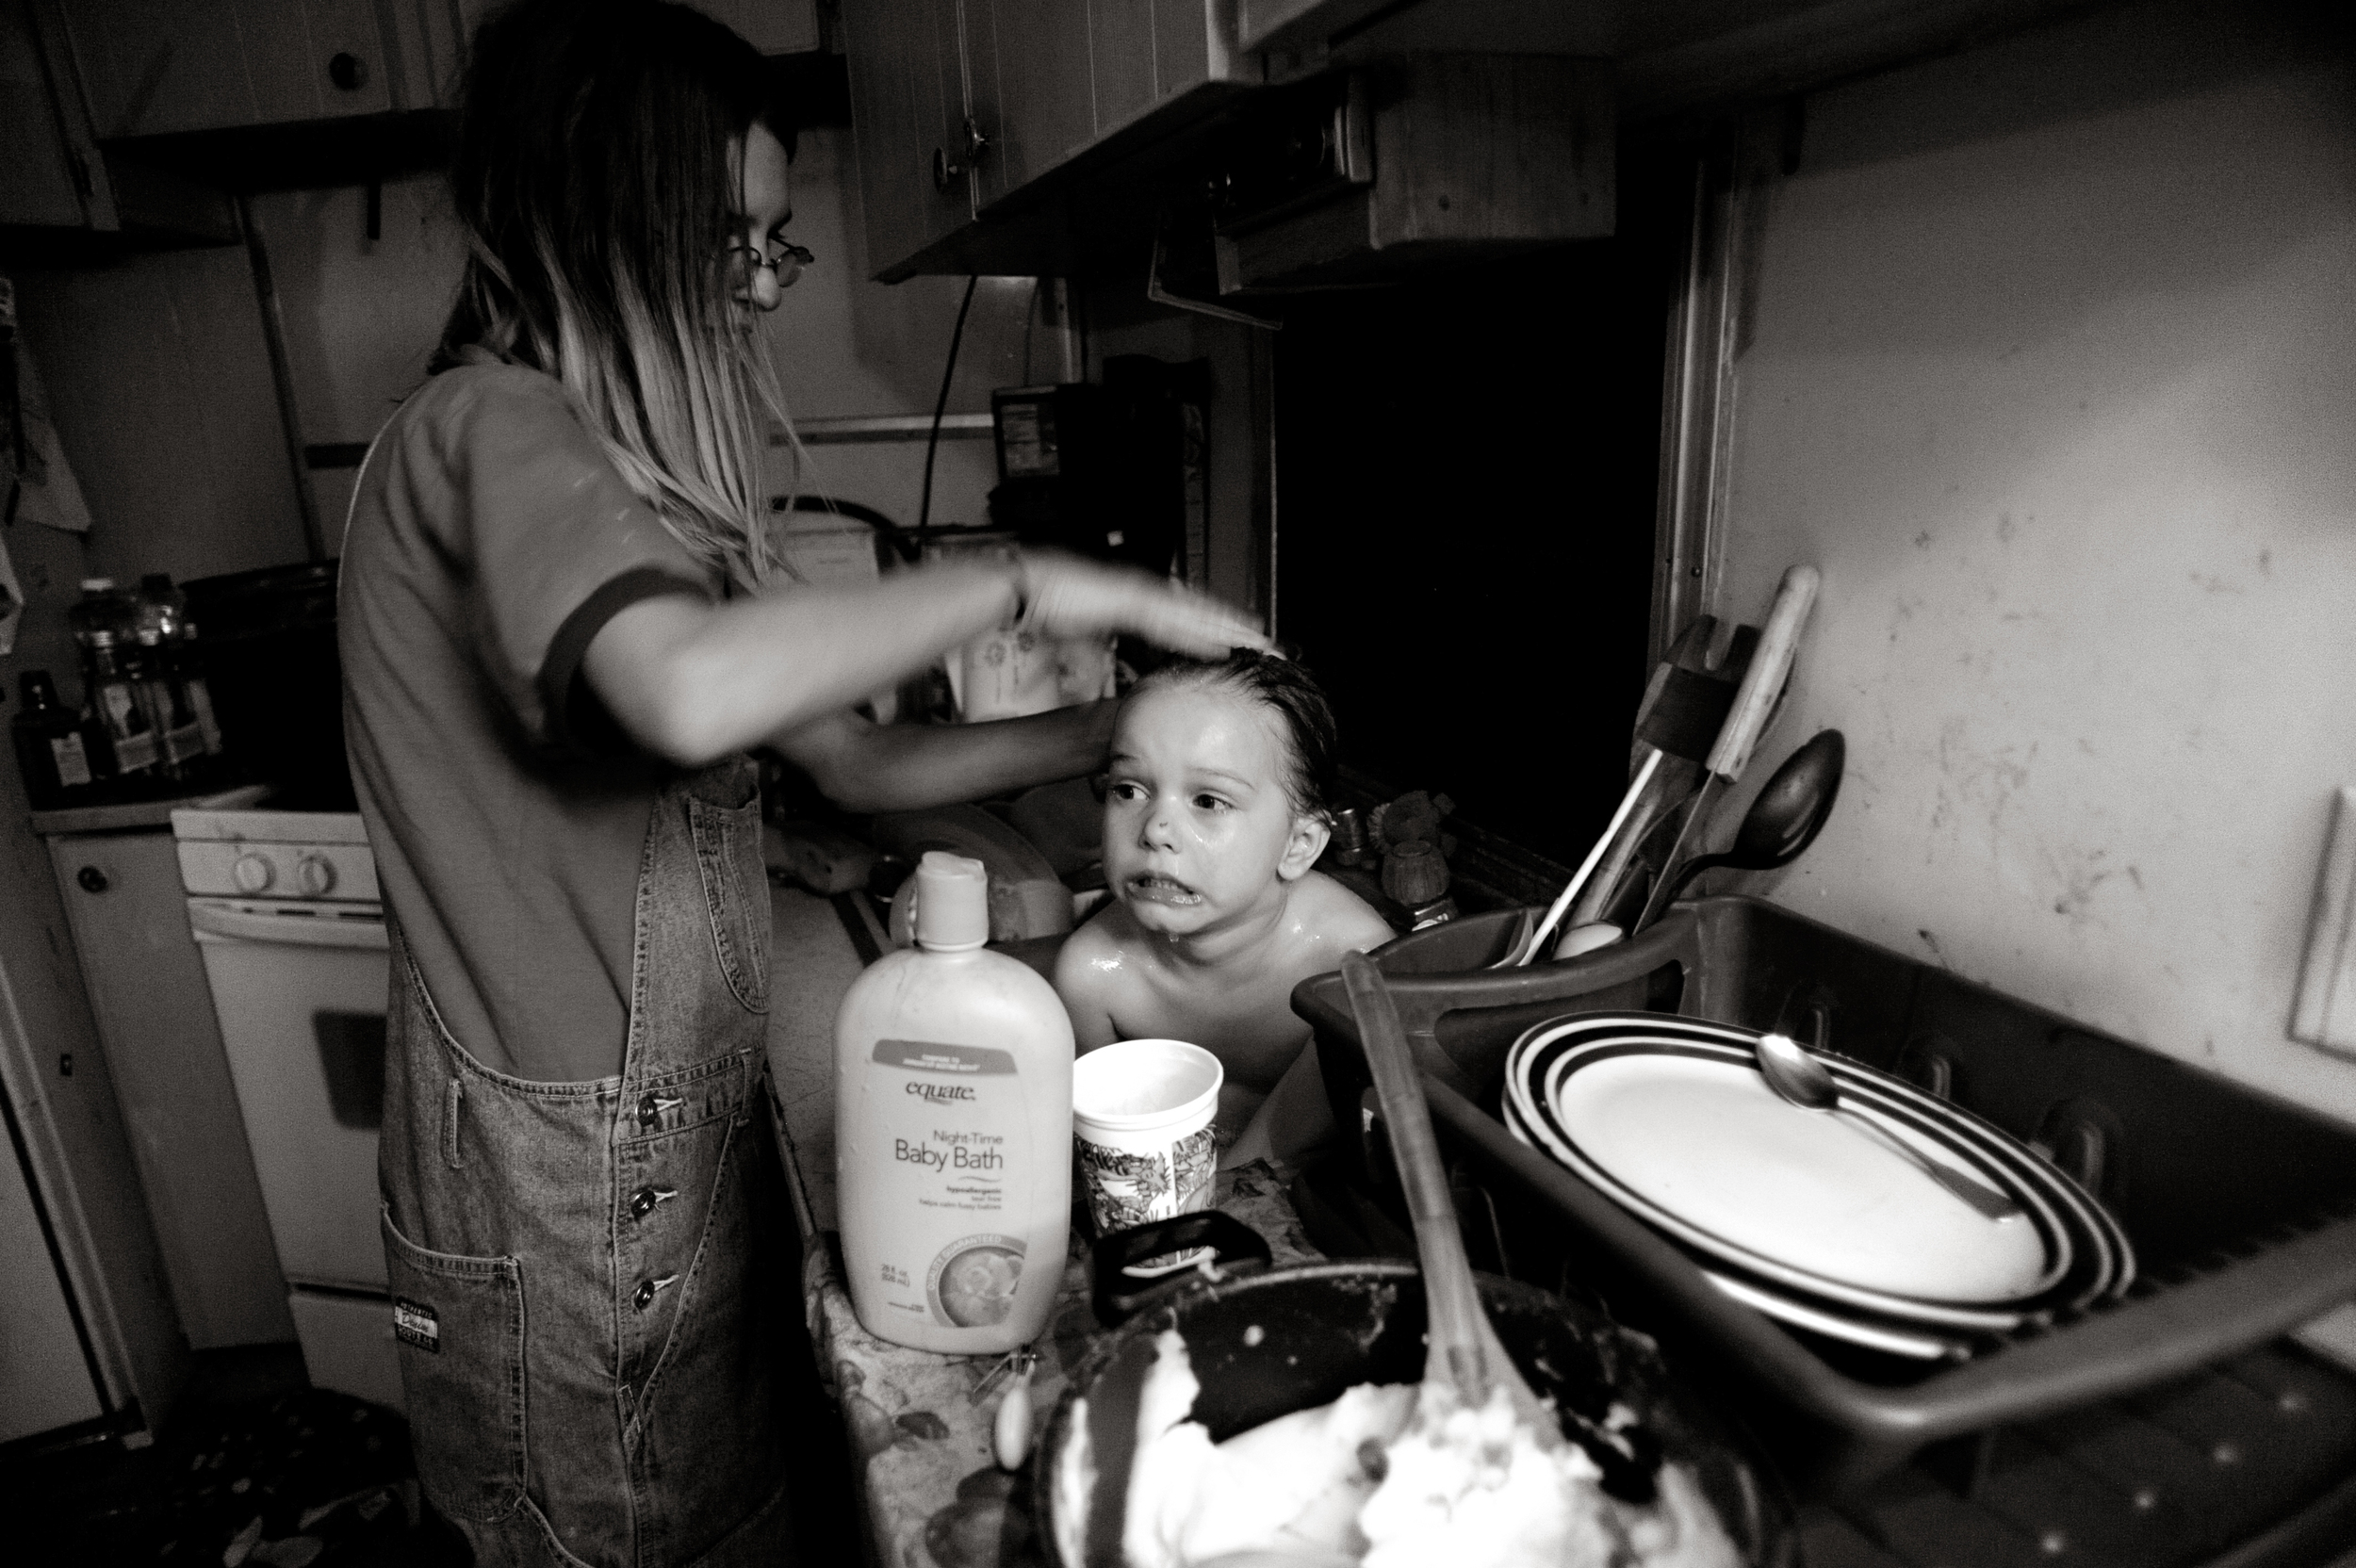 Charina Cook bathes her unwilling daughter, 3-year-old Lakota Vanessa Rene Douglas, in the kitchen sink. Cook and her children moved back in with her parents after her husband left them. © Joe Amon/The Denver Post